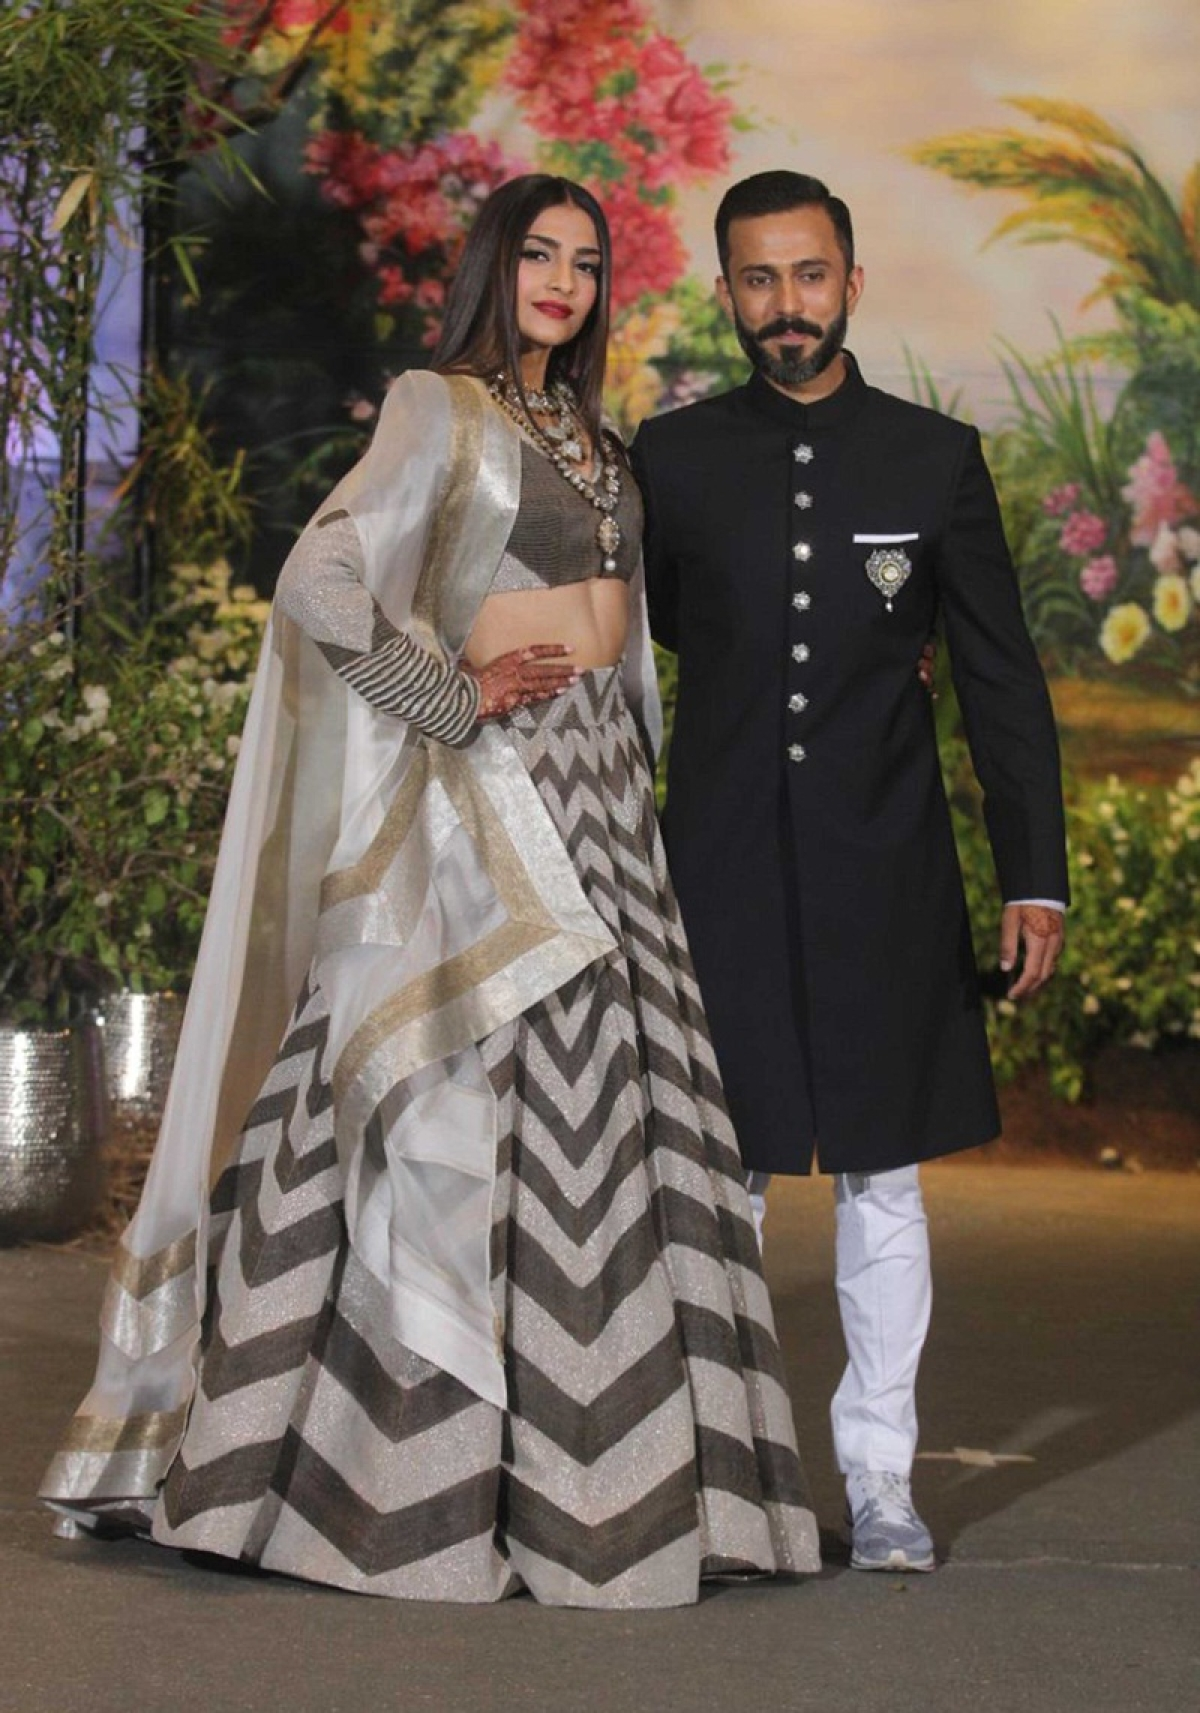 Mumbai : Actress Sonam Kapoor with husband Anand Ahuja during their Wedding<br />Reception at Leela Hotel in Mumbai on Tuesday night . Photo by BL SONI